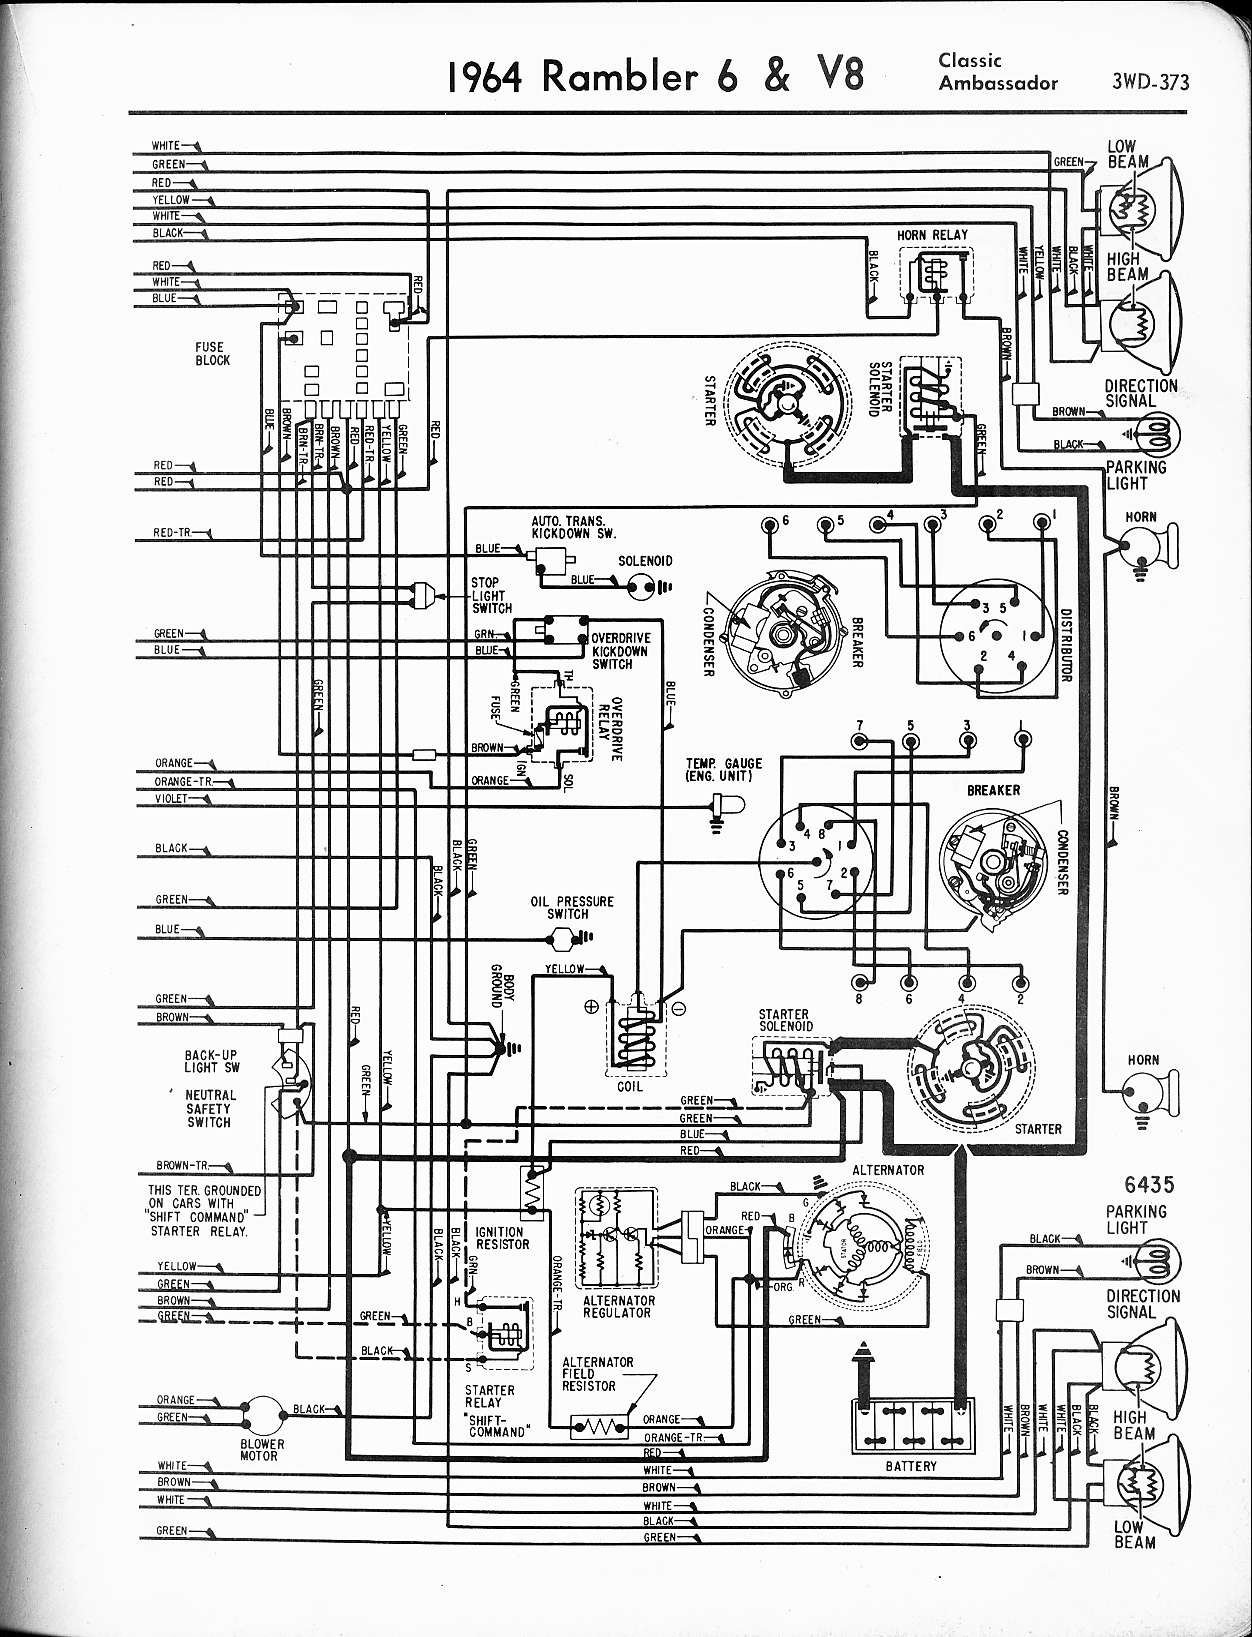 1969 Amx Horn Wiring Diagram Electrical Work F100 Harness Rambler Diagrams The Old Car Manual Project Rh Oldcarmanualproject Com Msd Ignition